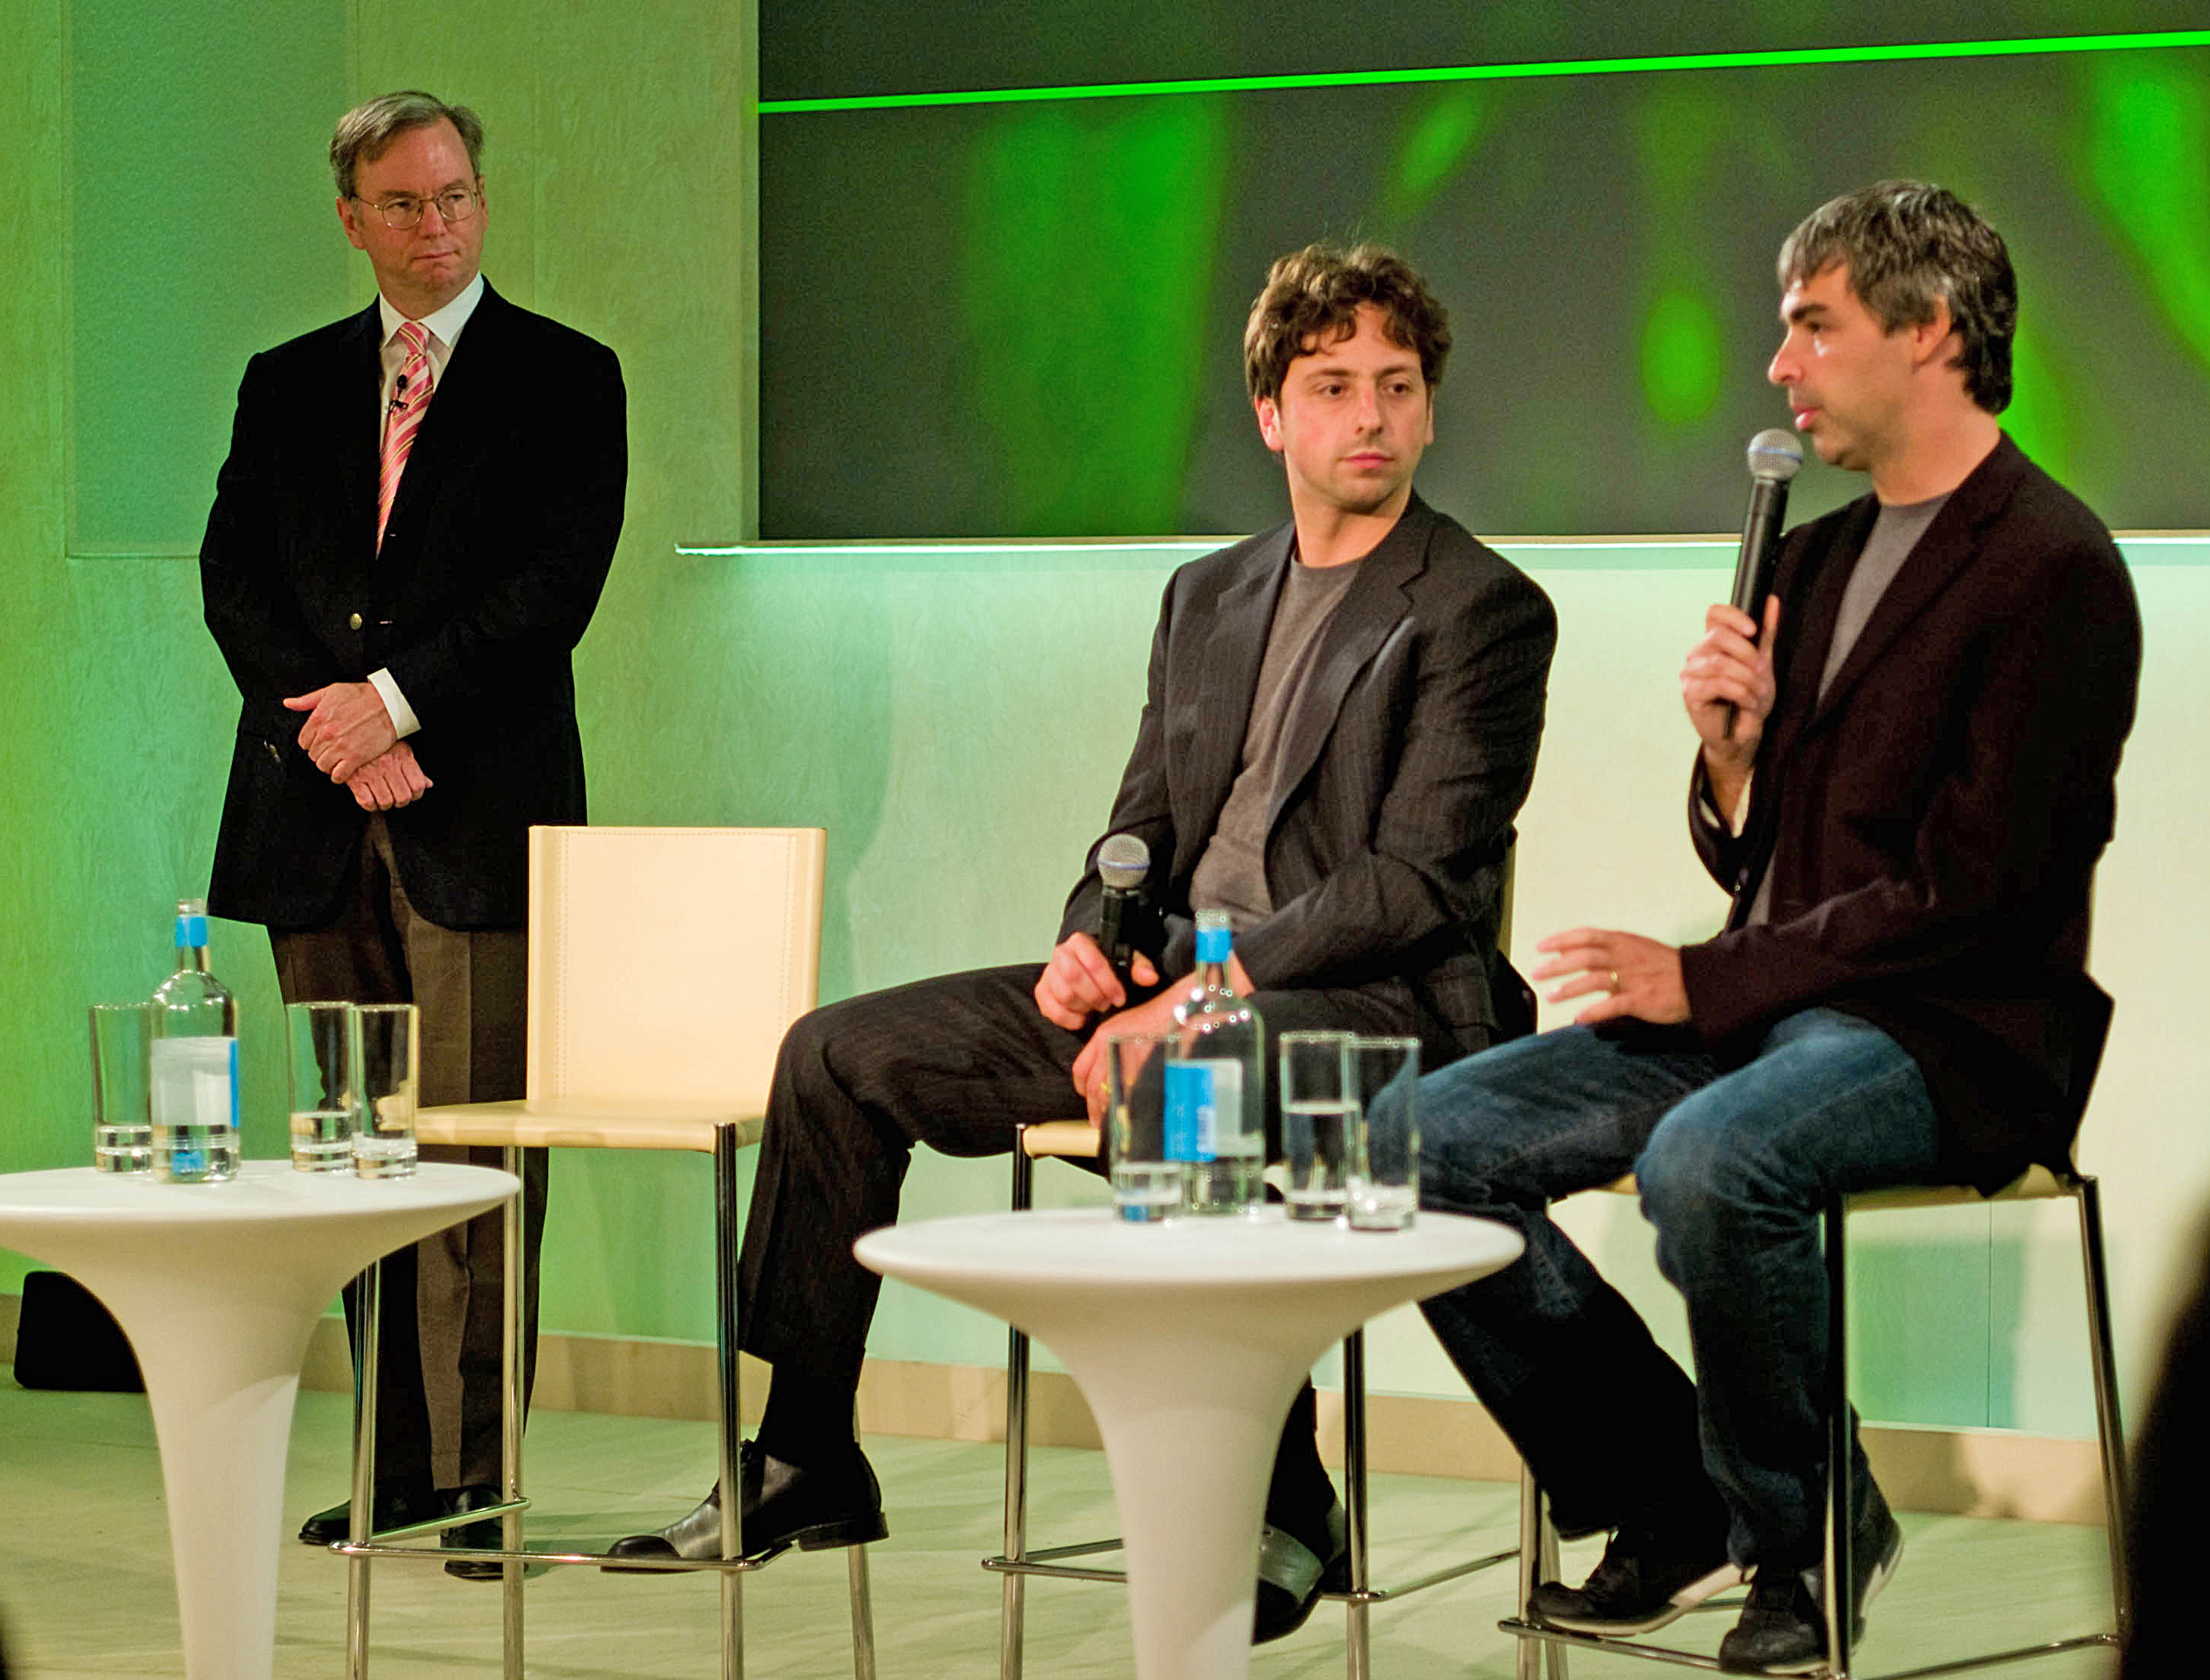 Then-CEO, now Chairman of Google Eric Schmidt with cofounders Sergey Brin and Larry Page (left to right) in 2008.